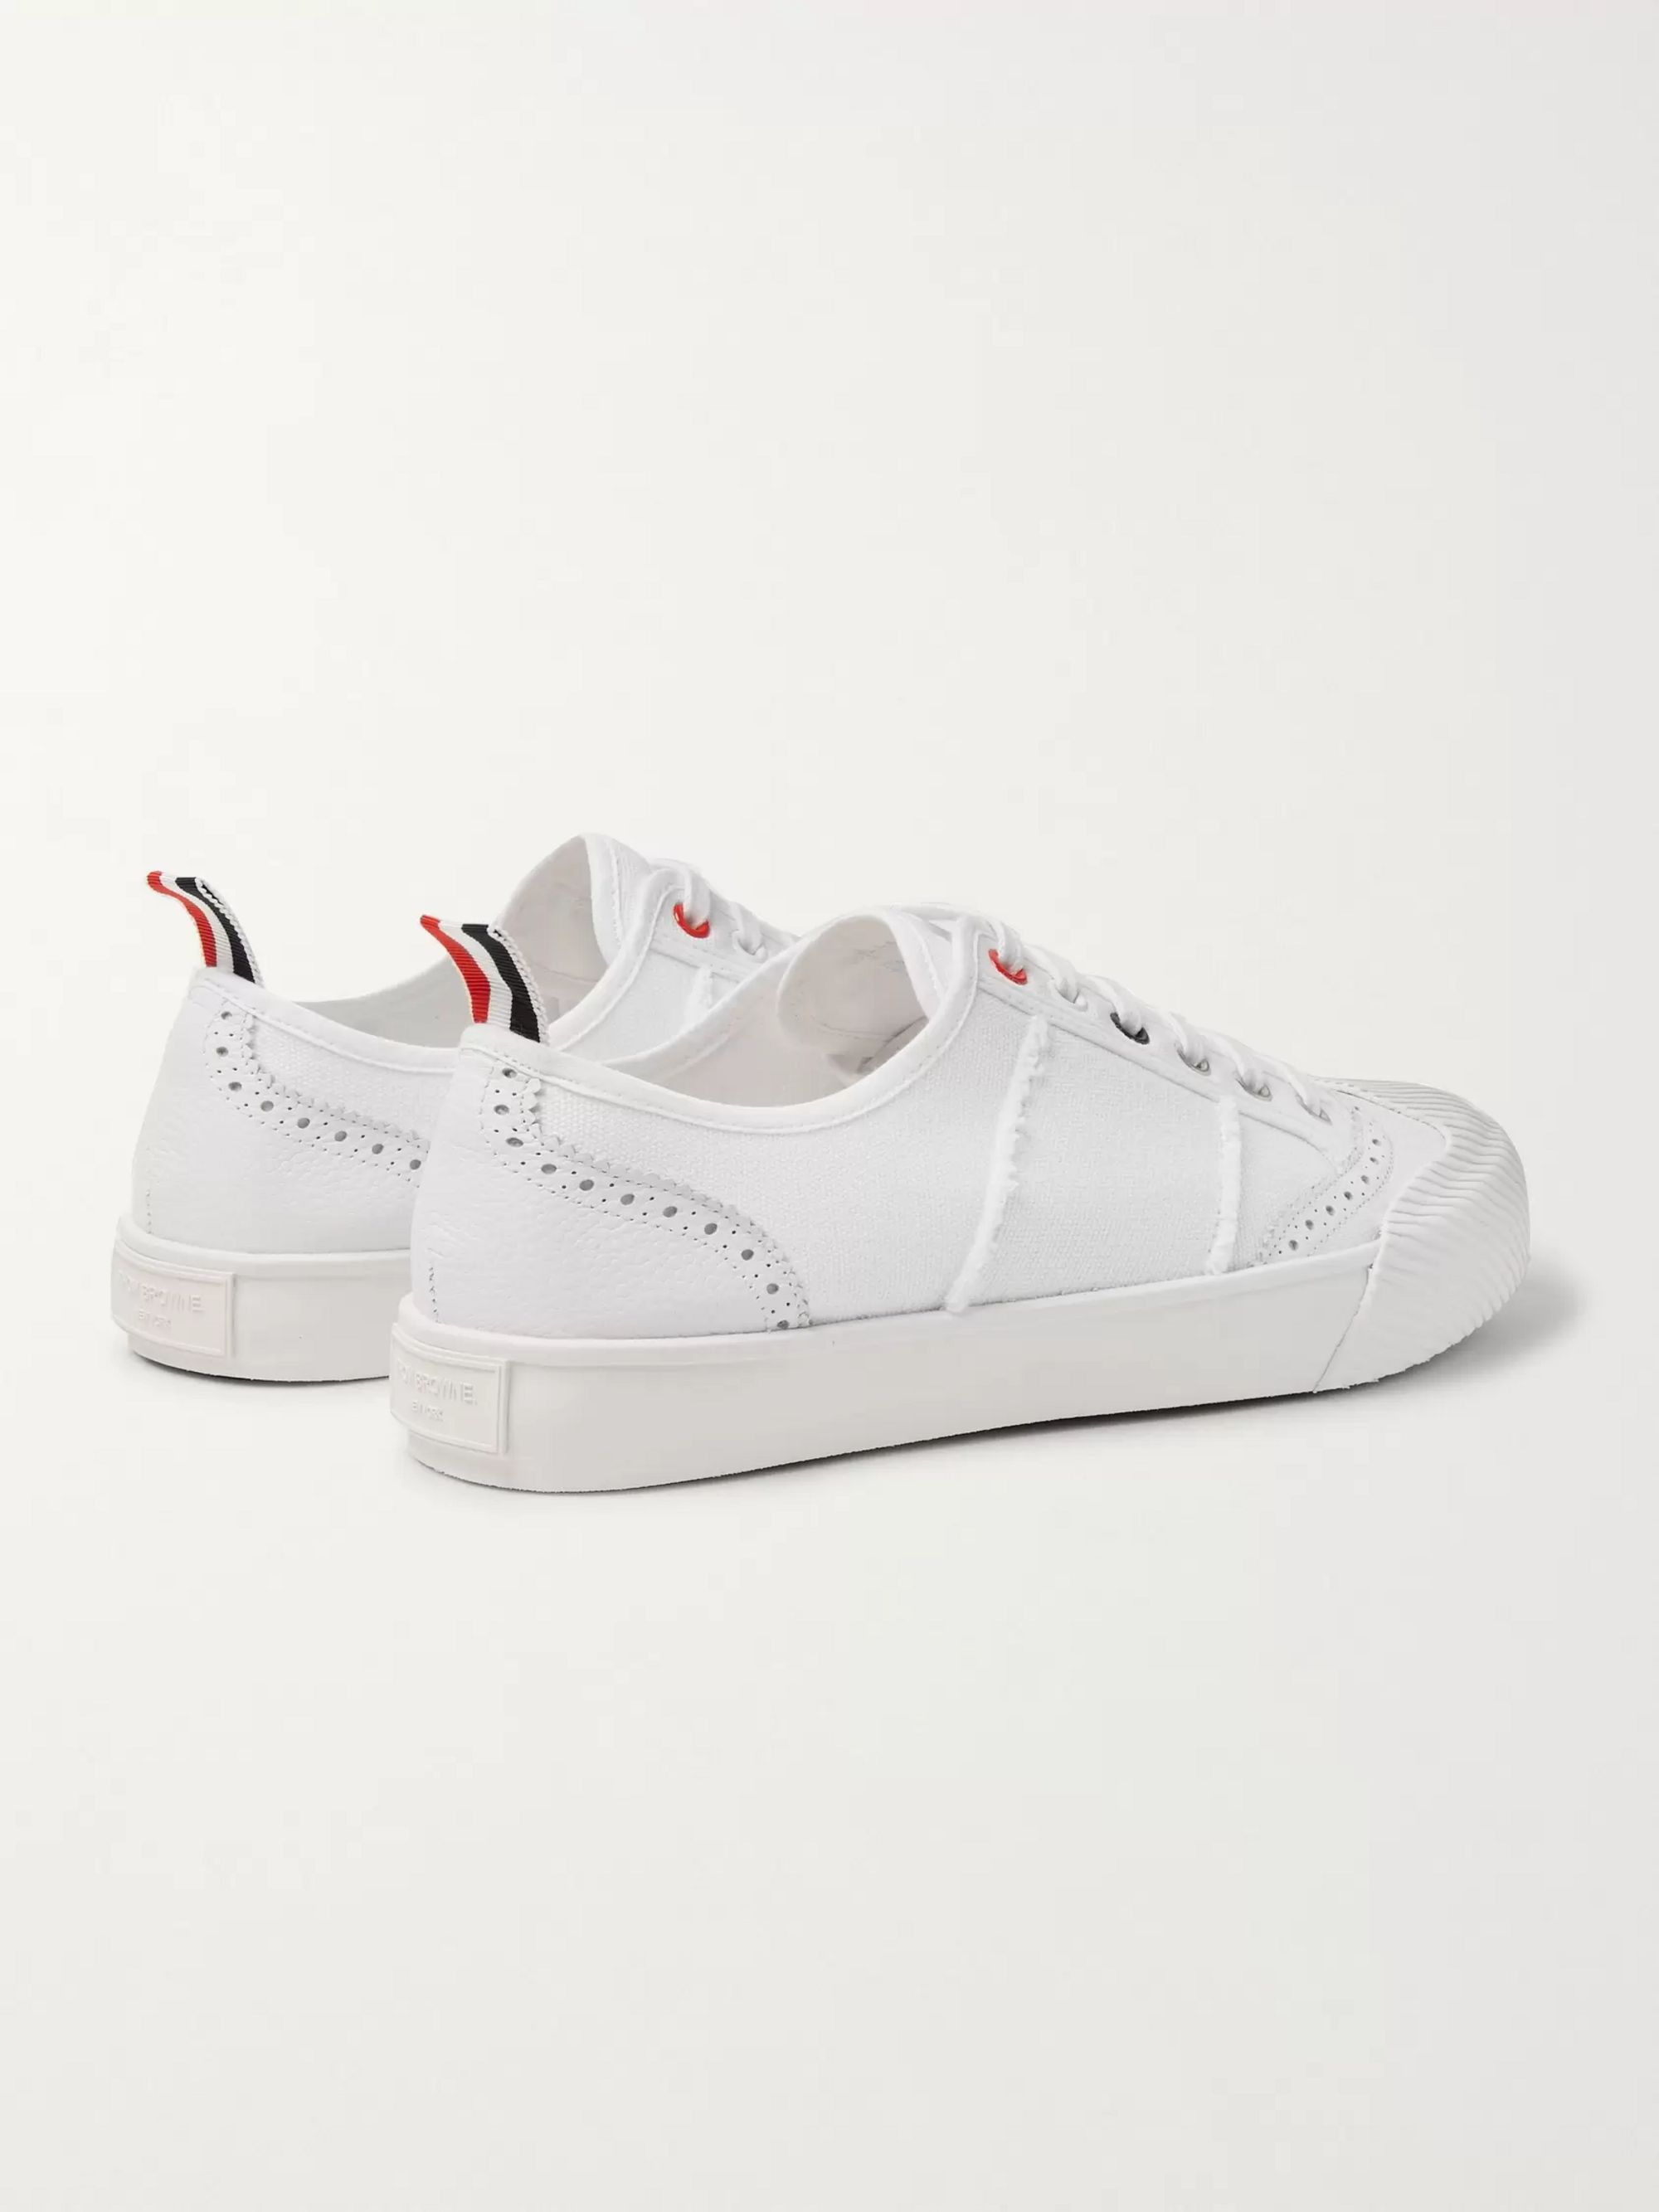 Thom Browne Leather and Rubber-Trimmed Canvas Sneakers